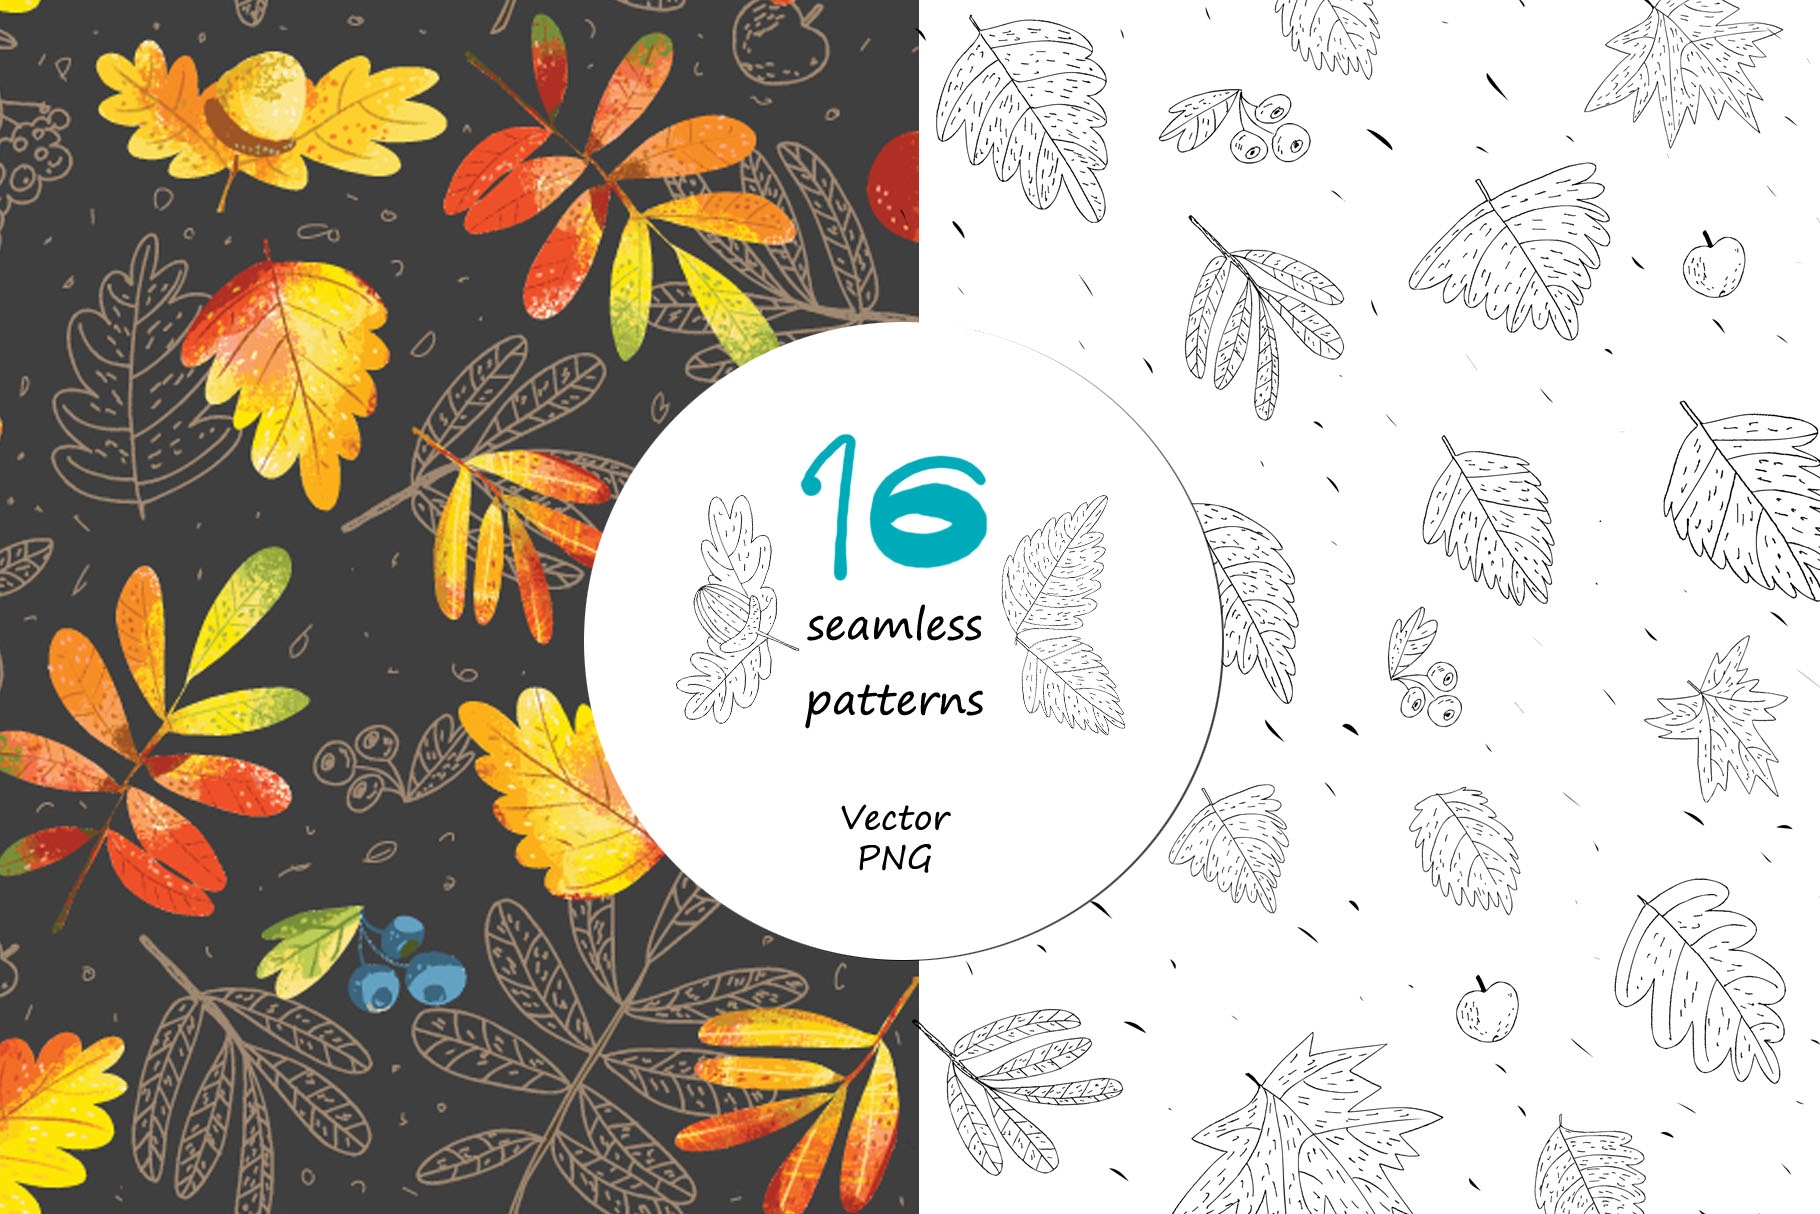 Autumn Leaves - over 30 objects, frames, patterns example image 8